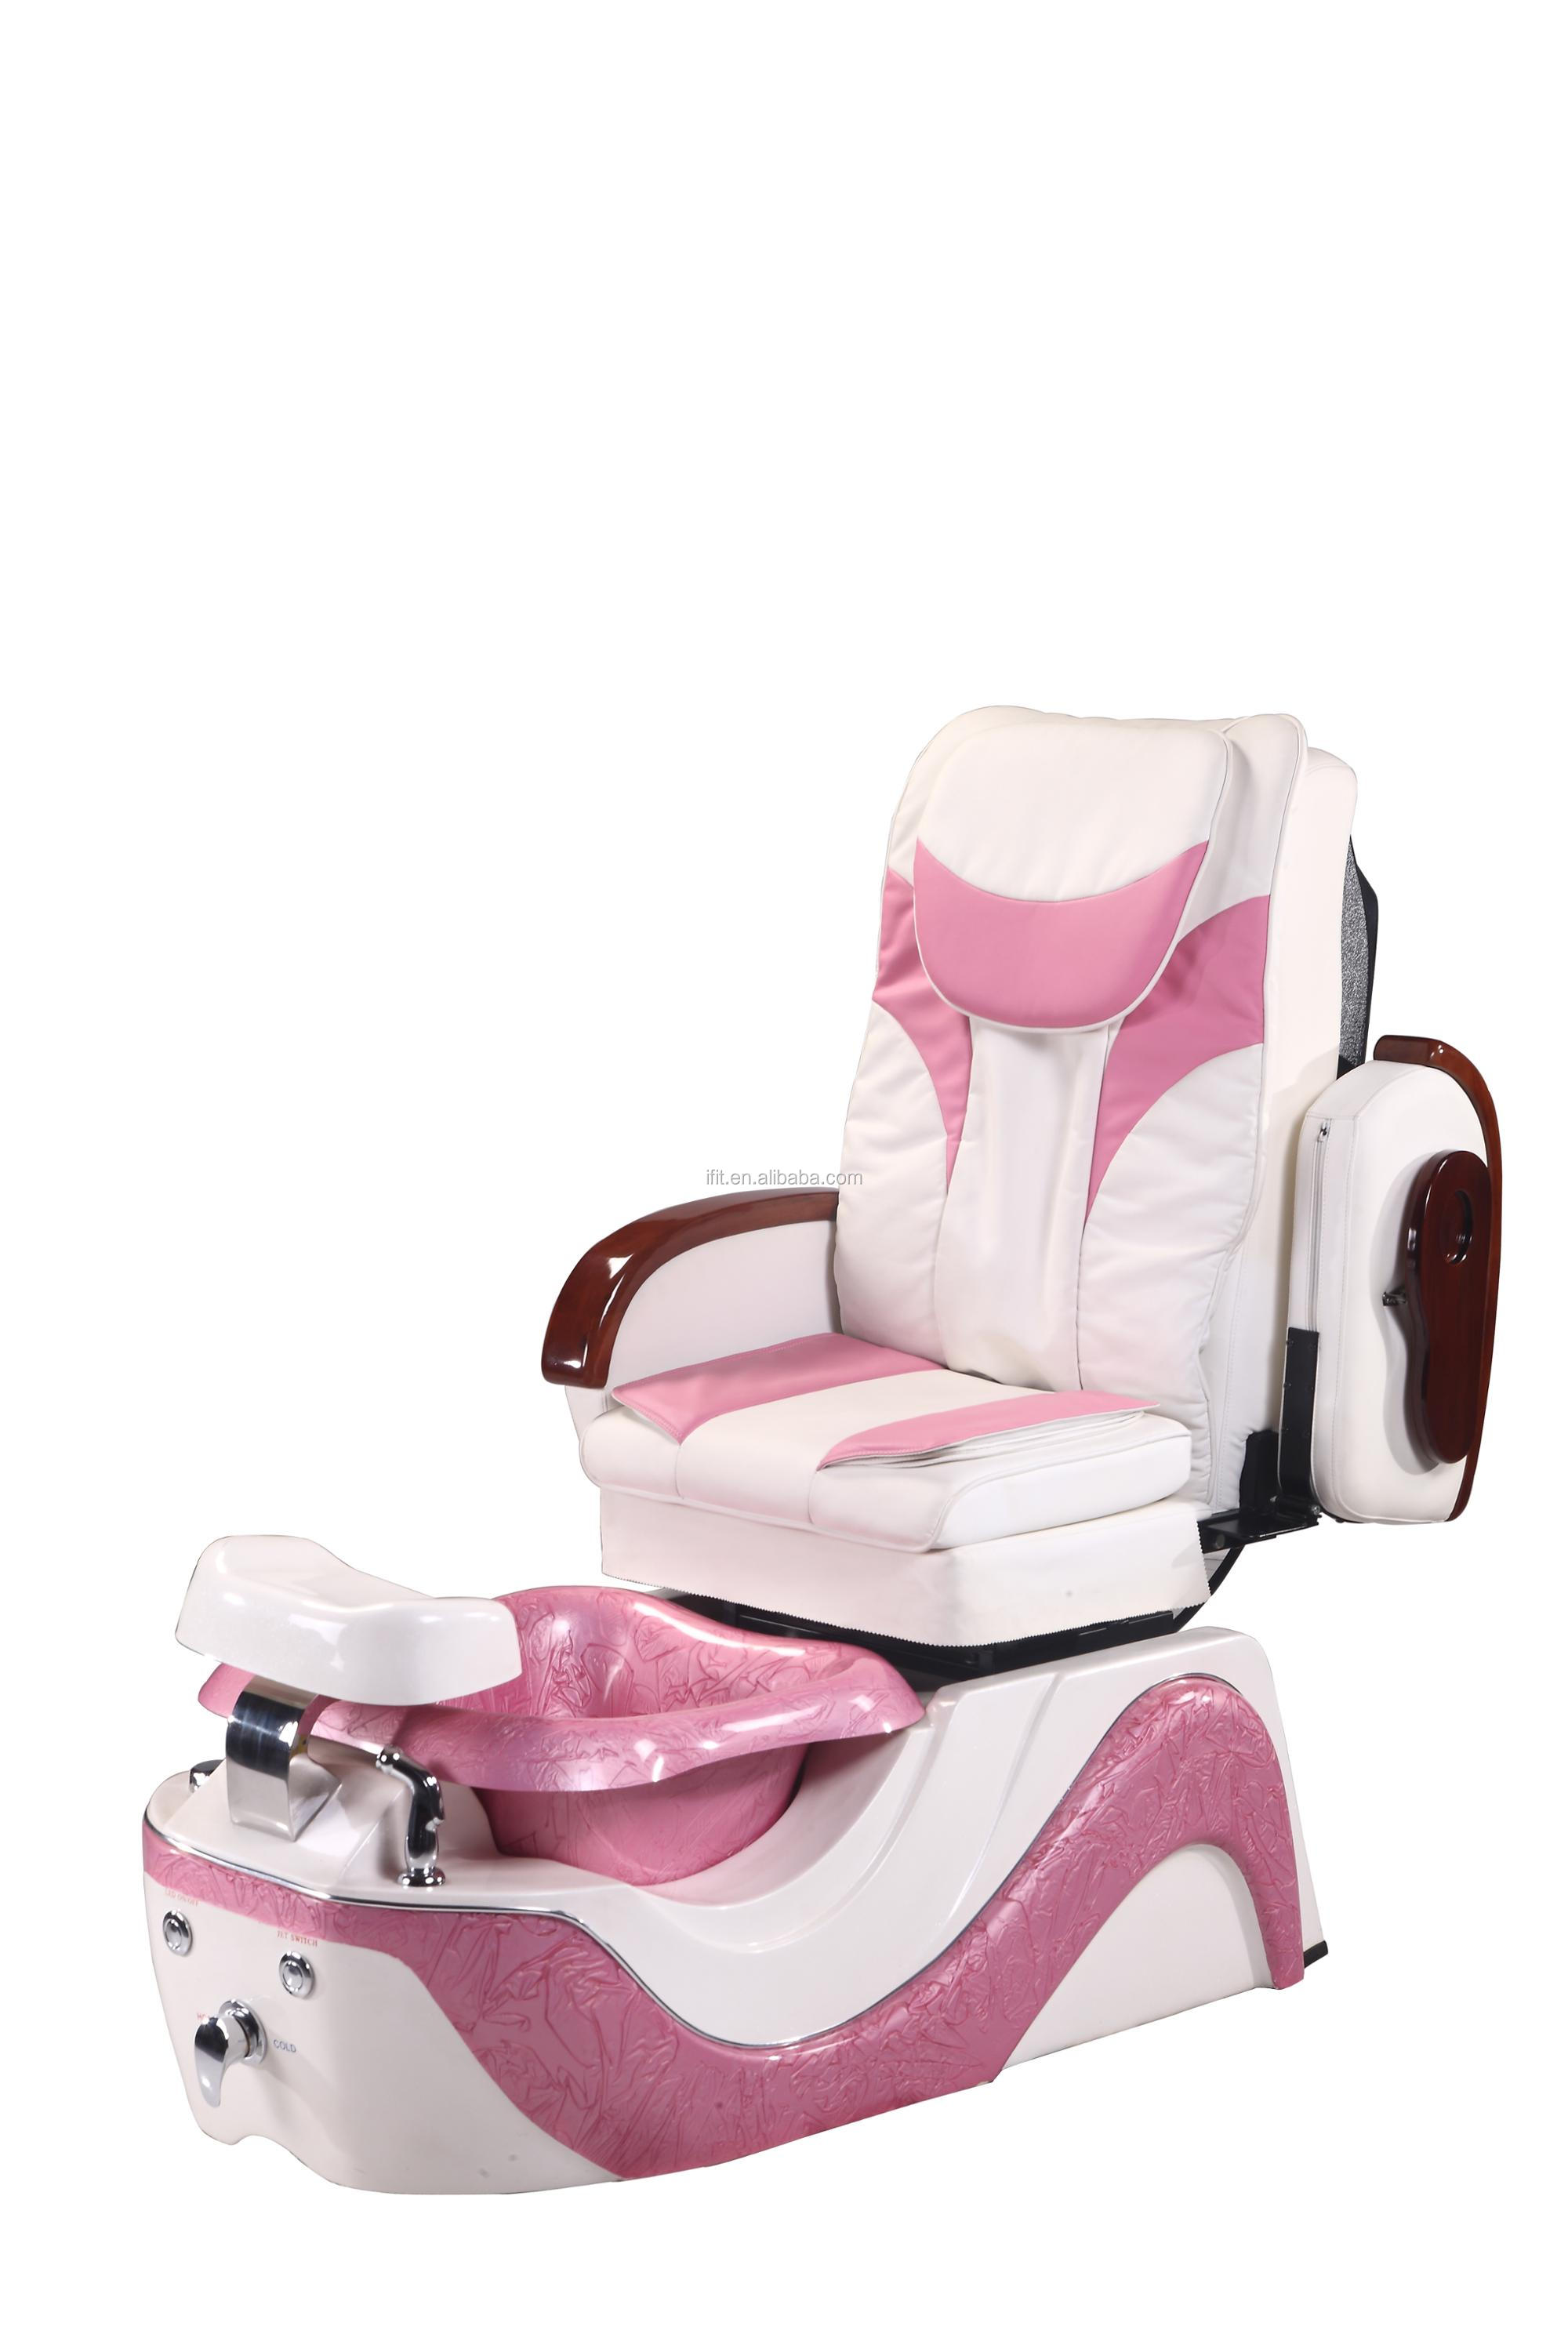 luxury spa pedicure chairs beauty manicure pedicure chair for nail